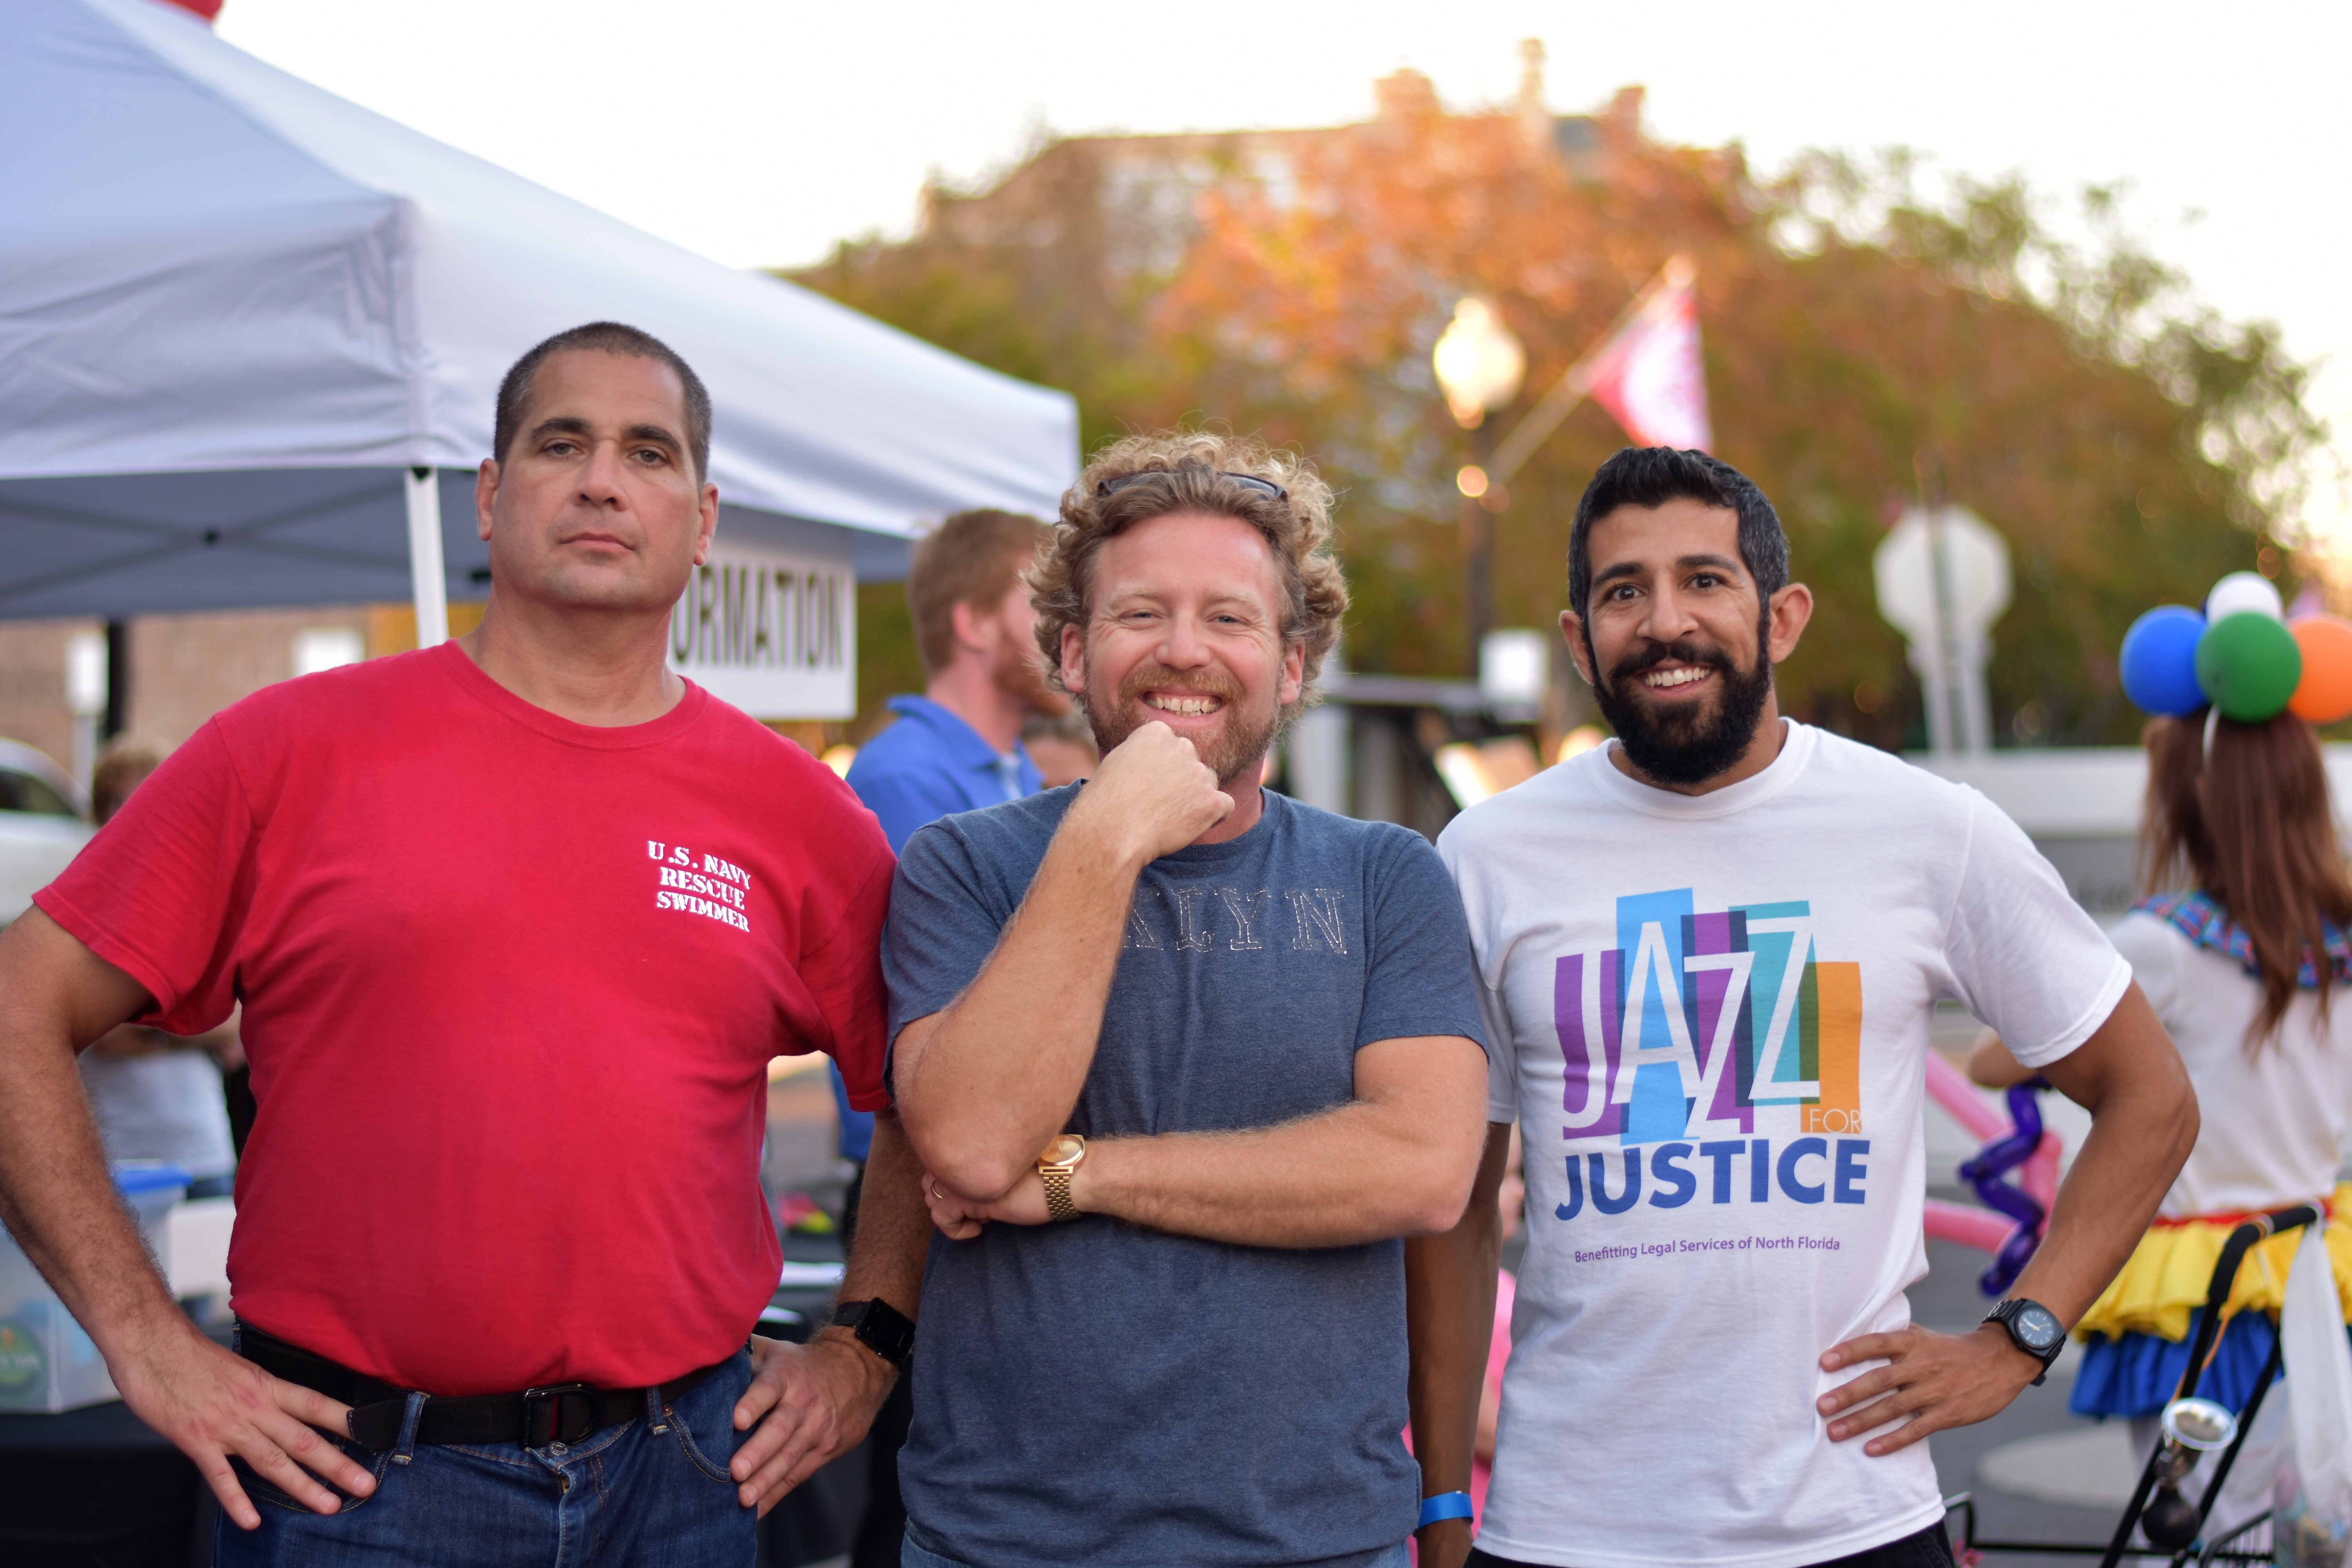 Jazz for Justice 2017